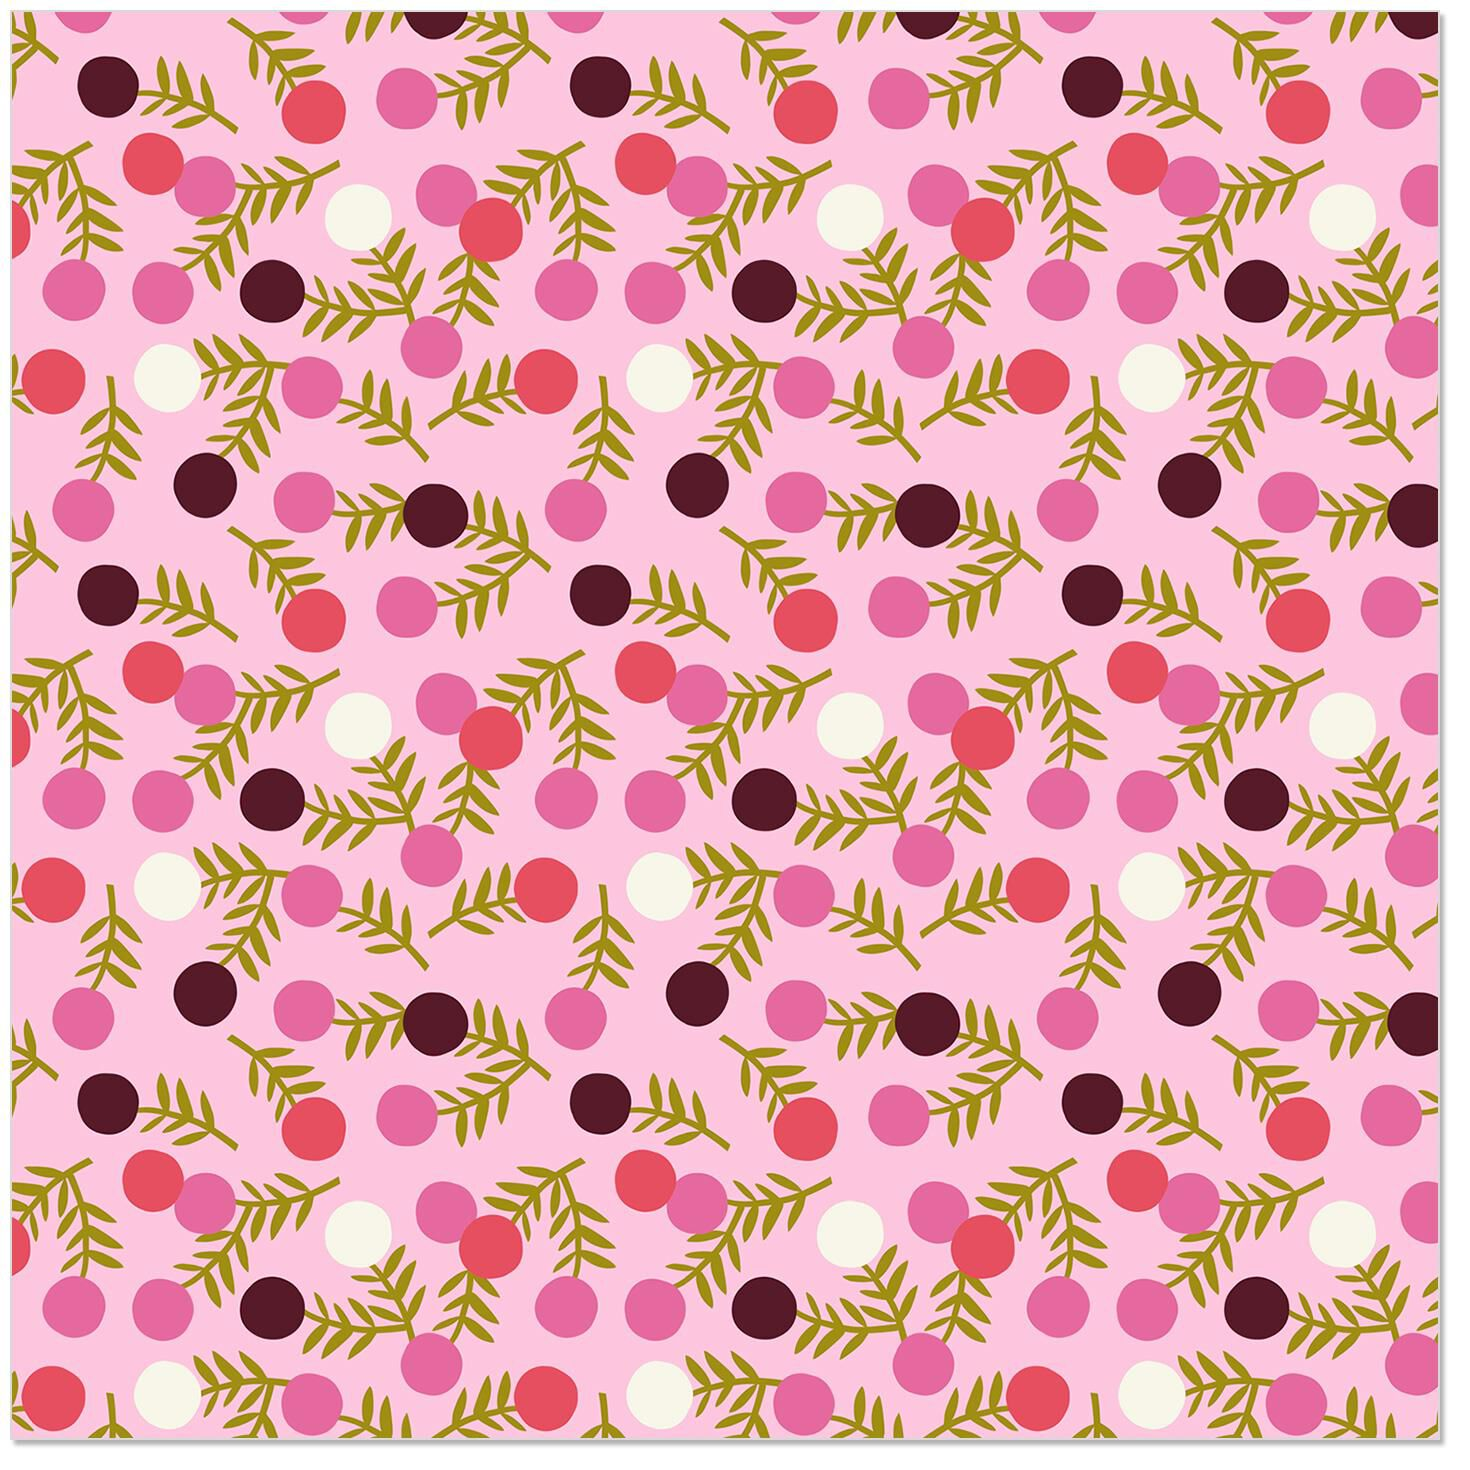 Polka Dot Flowers Wrapping Paper Roll 27 Sq Ft Wrapping Paper